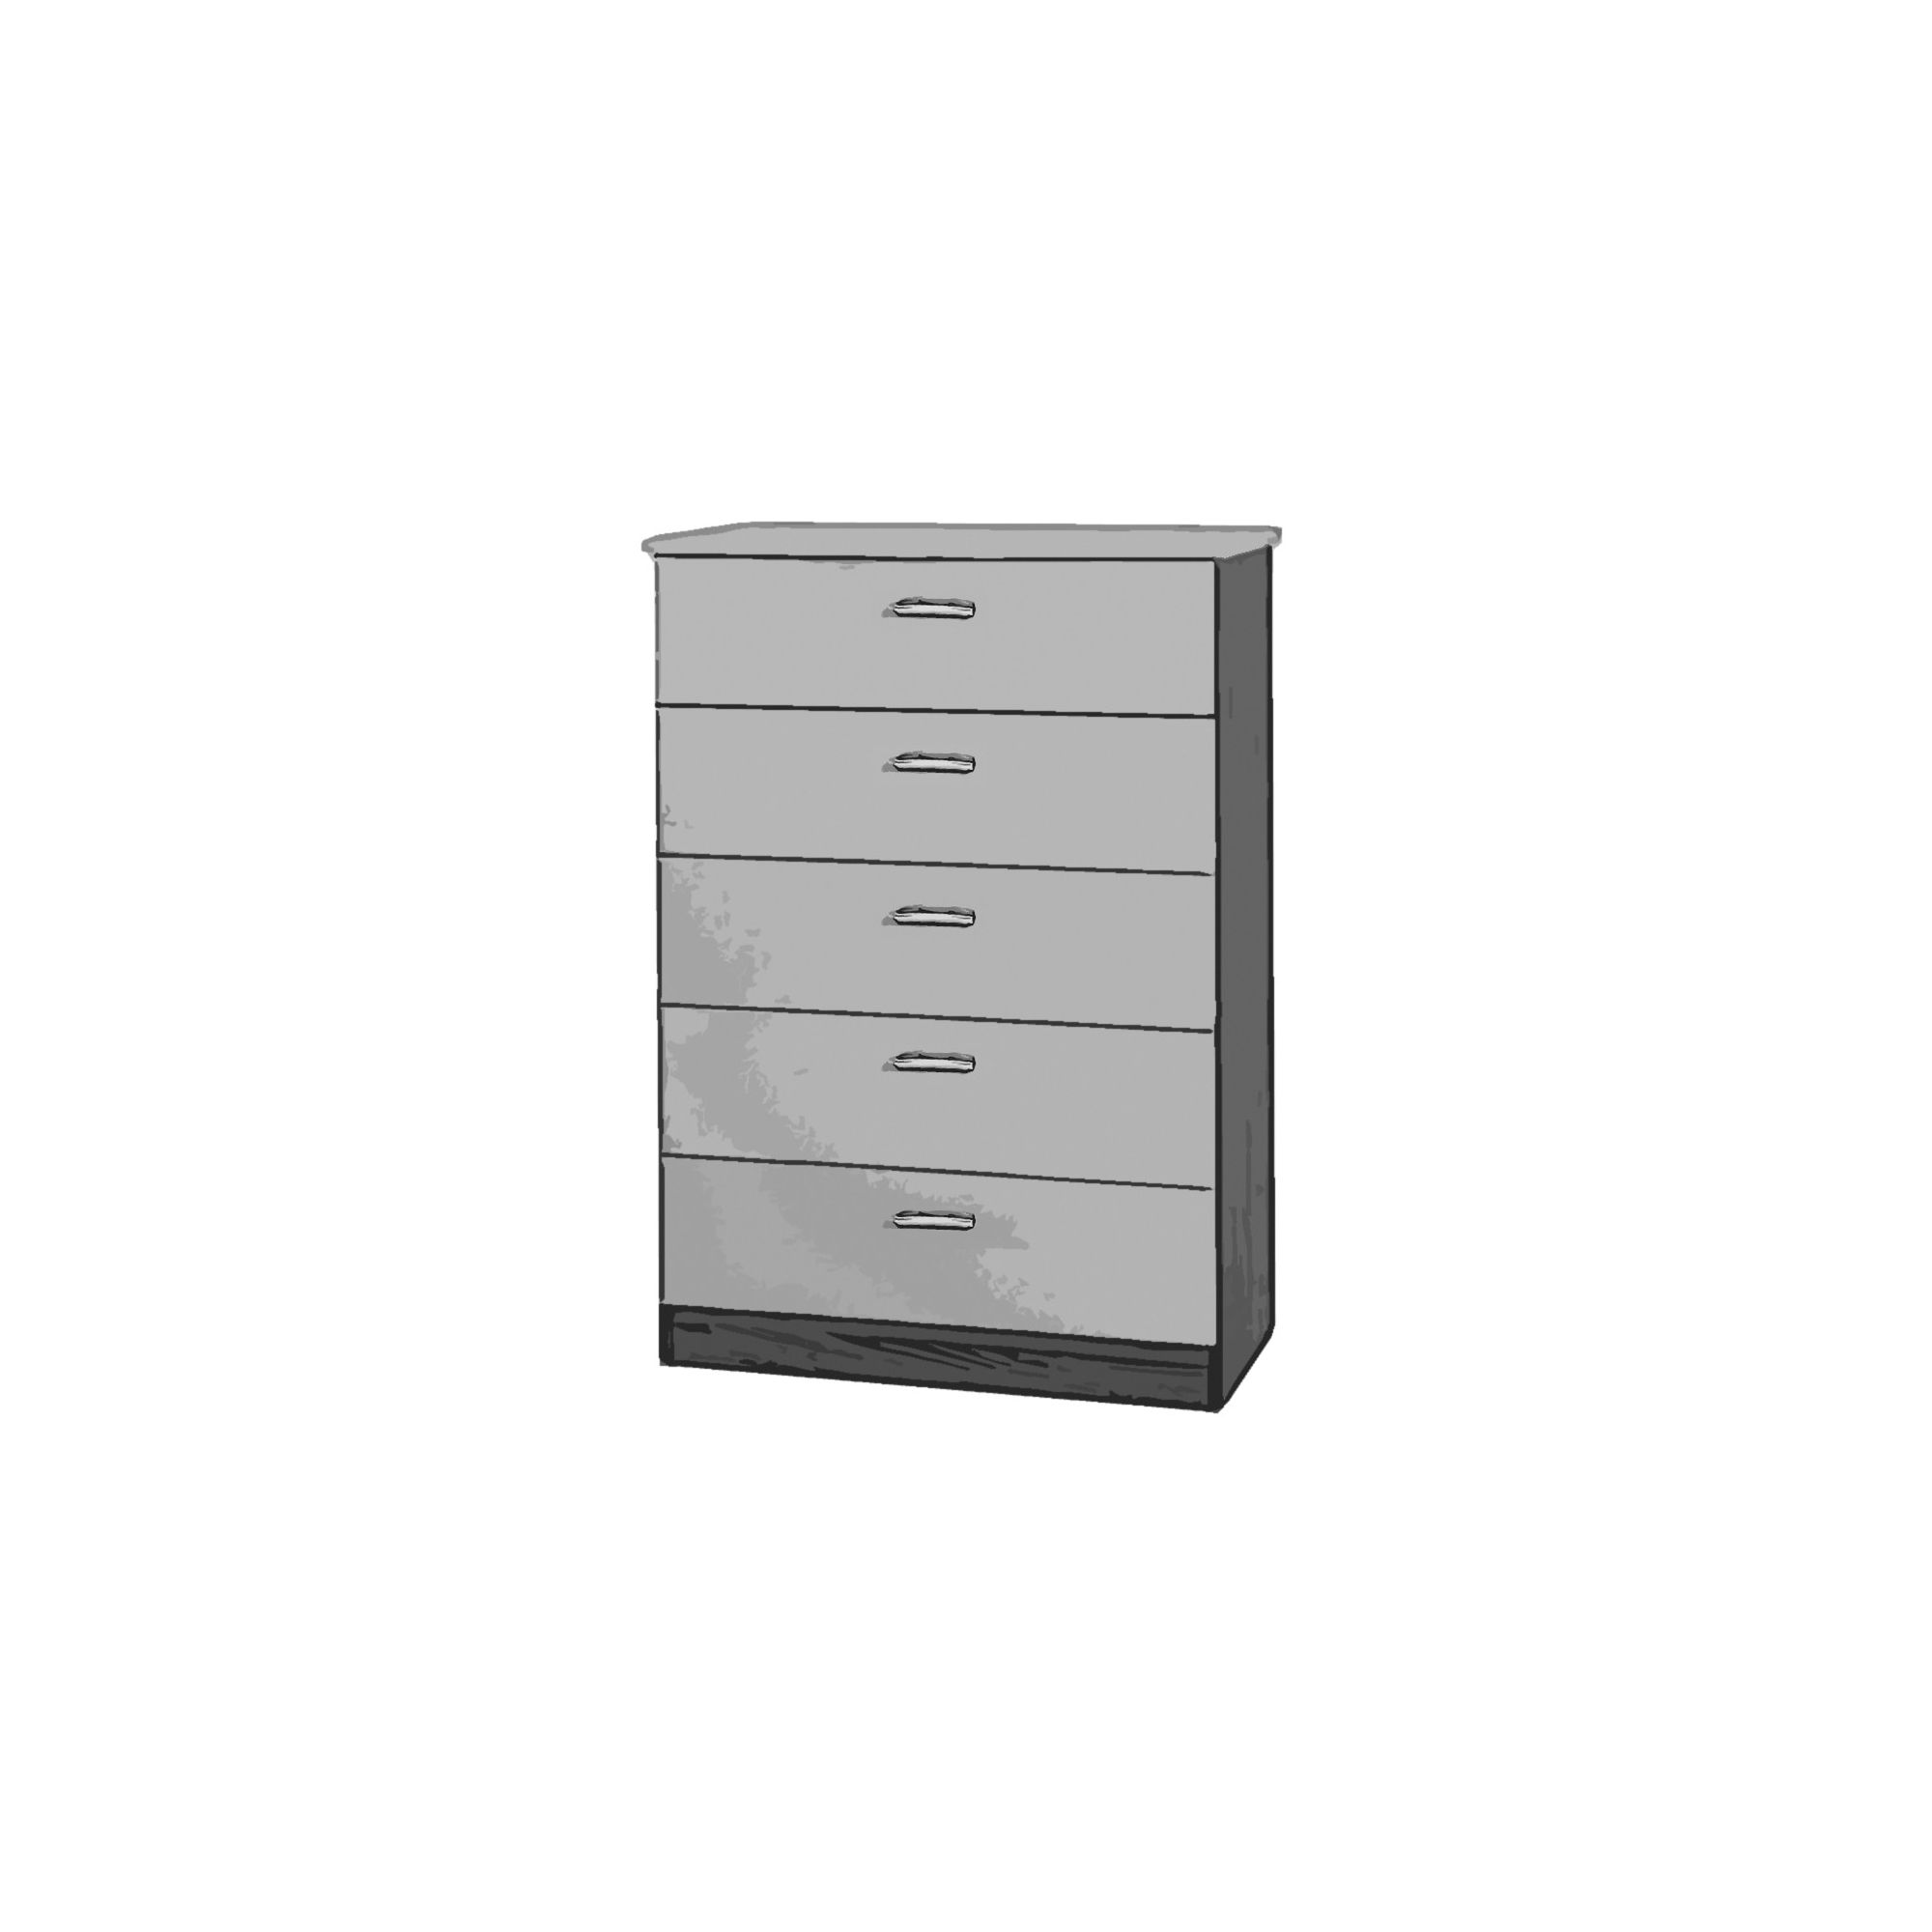 Welcome Furniture Mayfair 5 Drawer Chest - Aubergine - Black - Black at Tesco Direct